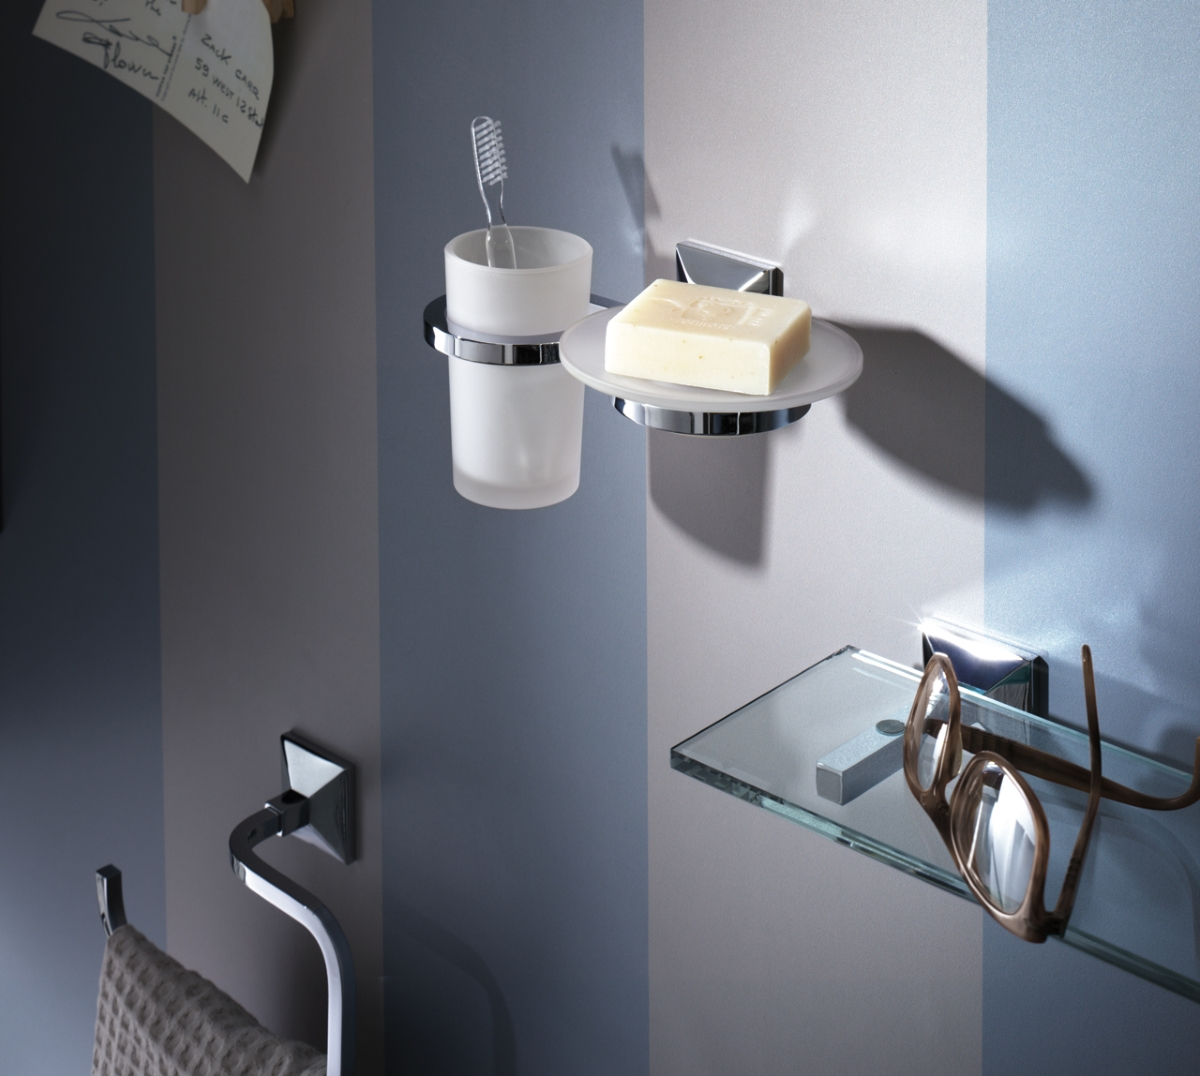 Accessories modern and refined bathroom, toothbrush holder, soap dish